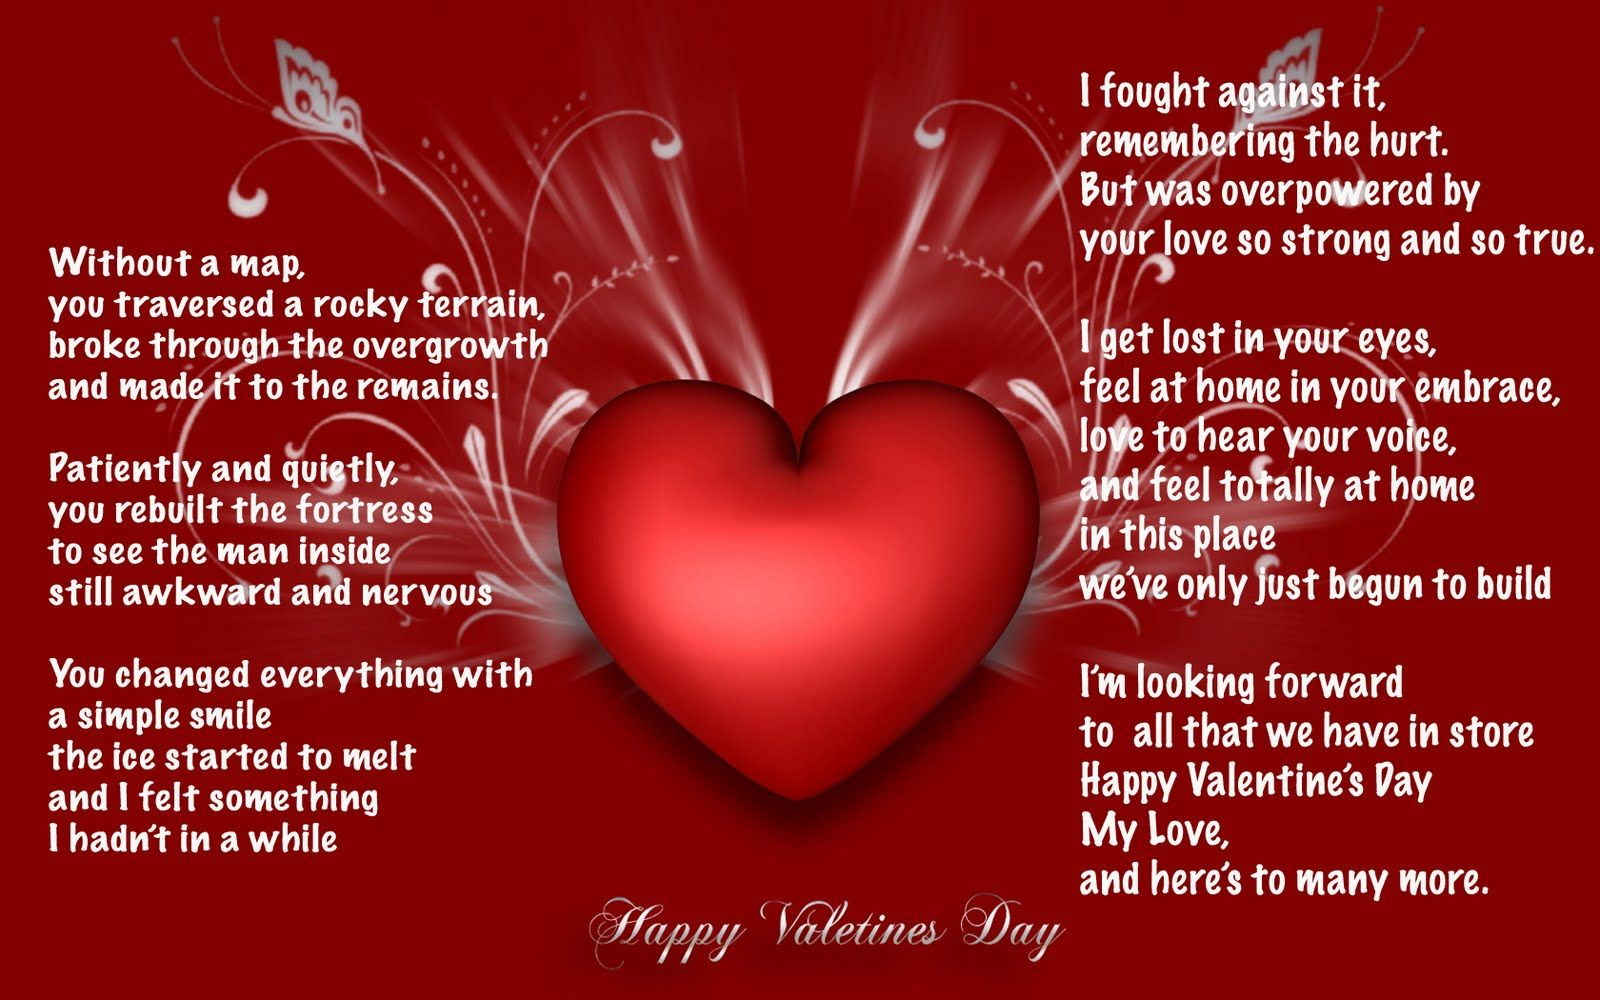 Happy Valentine s Day Quotes & Sayings Wishes for Girlfriend Boyfriend Lover